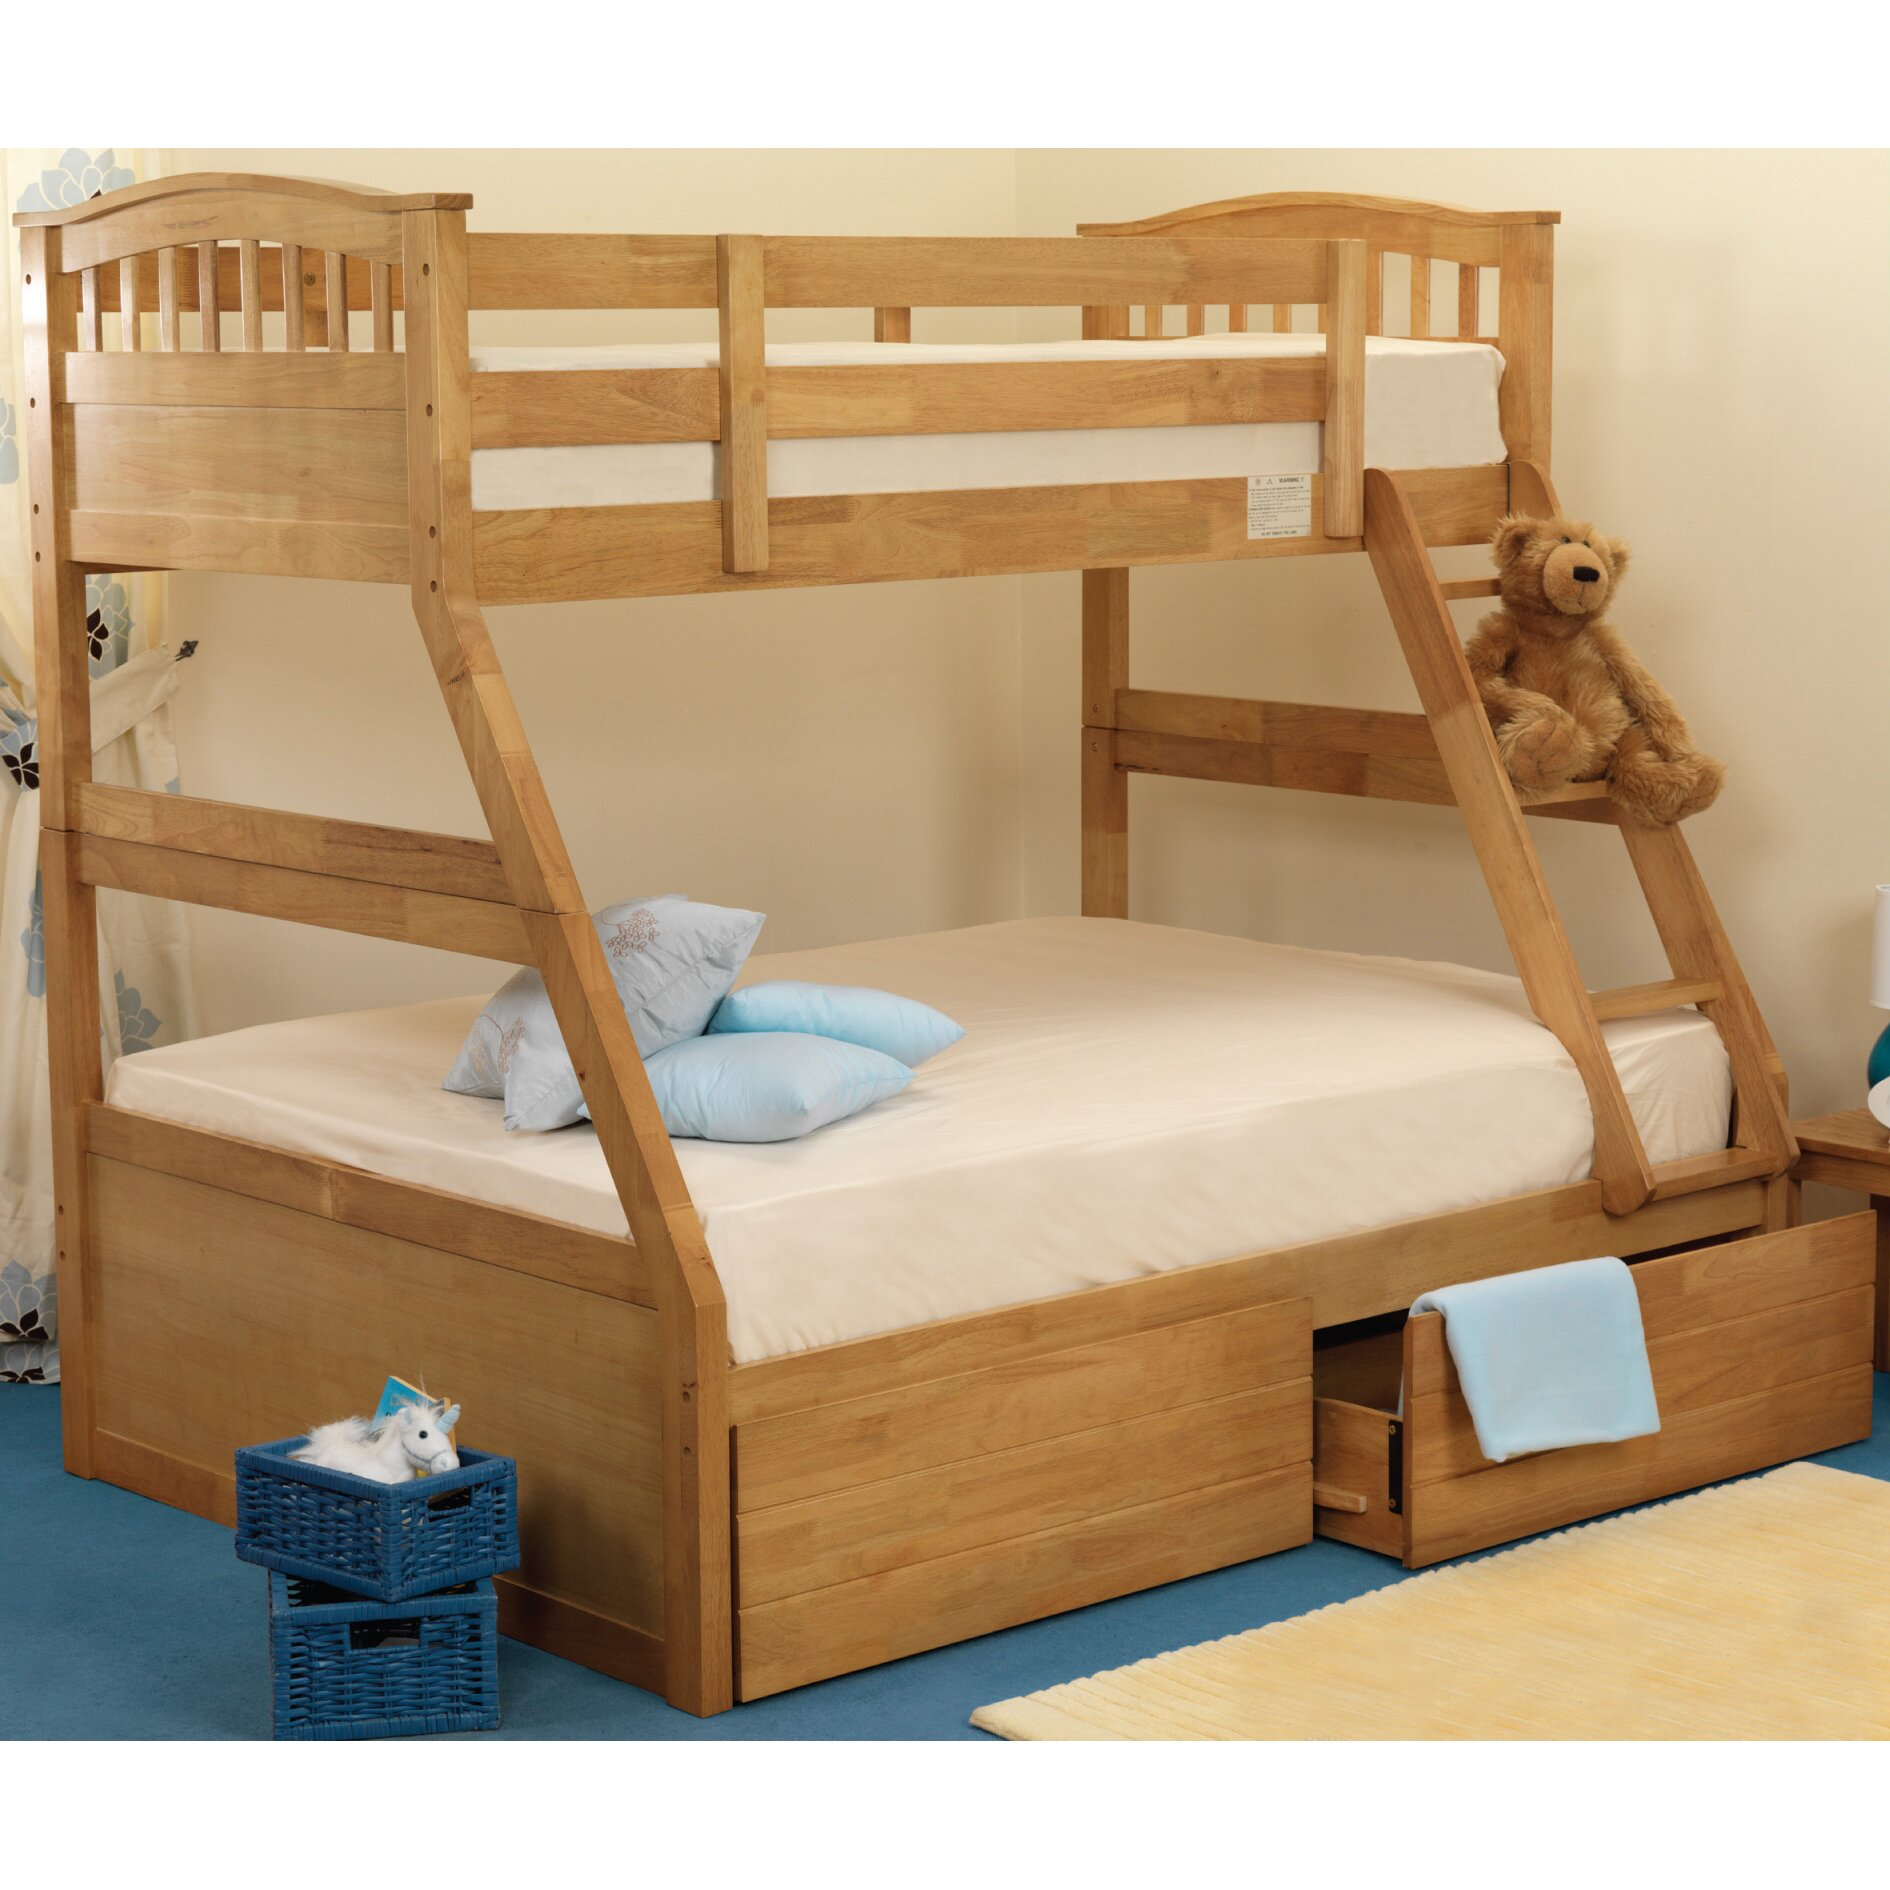 Bunk Bed Viv Rae Alabama Gypsyrose Triple Sleeper Bunk Bed Reviews